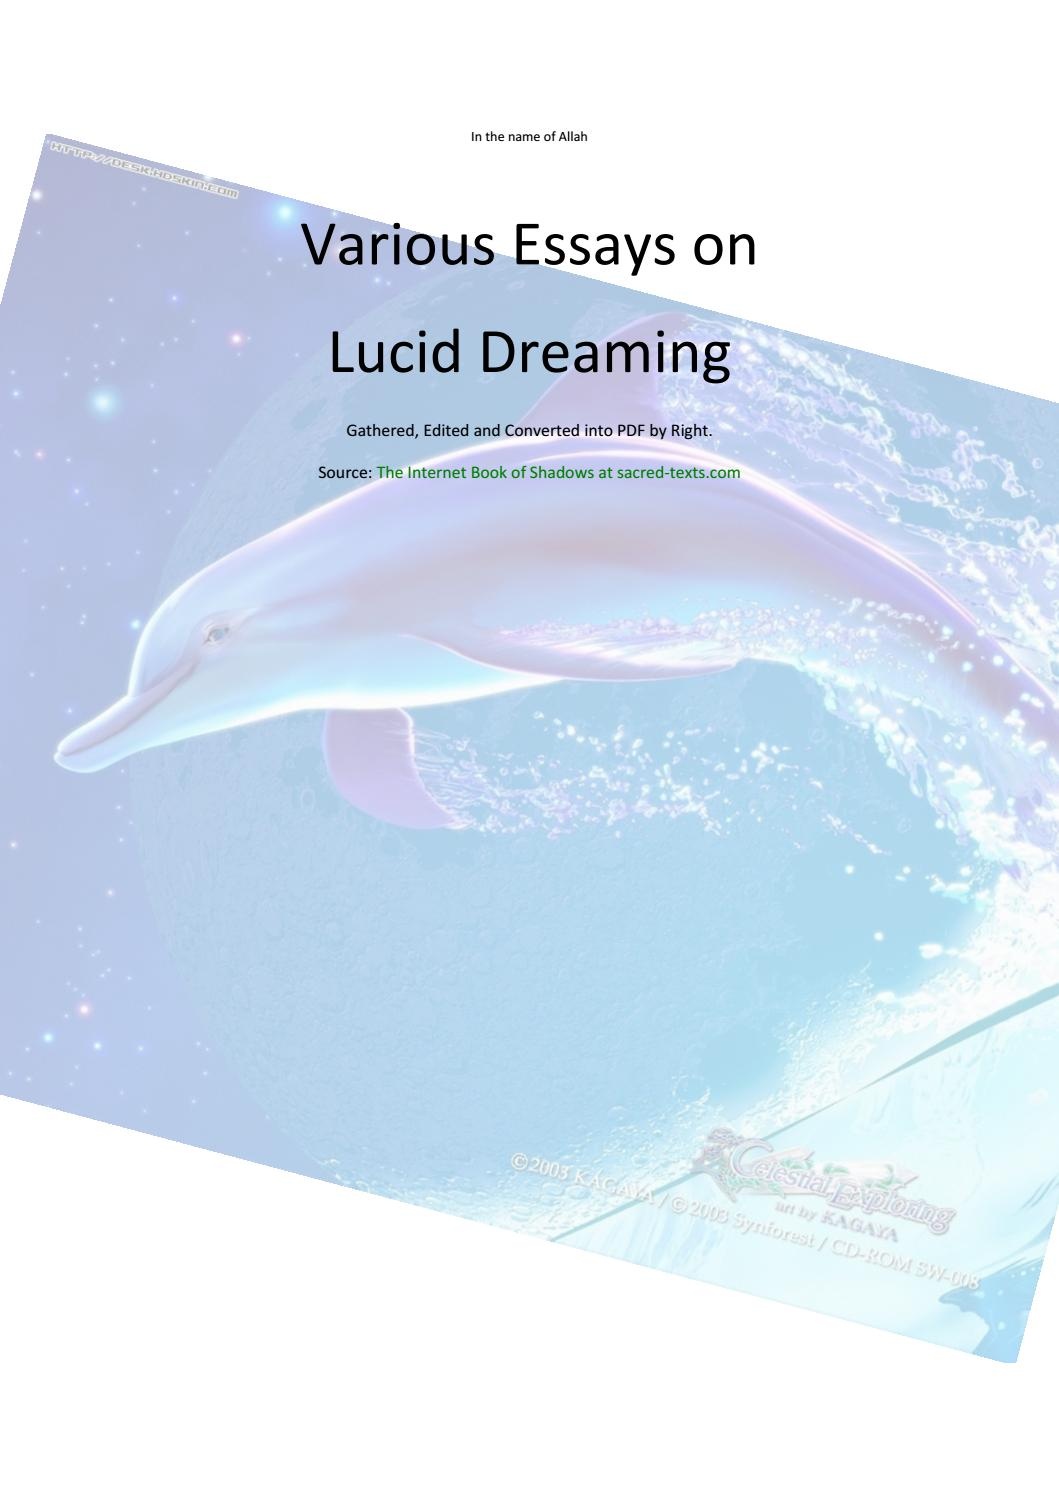 lucid dream essay The author of this essay the art of lucid dreaming casts light on the art of lucid dreaming that has been one of the most eye-catching and enthralling.